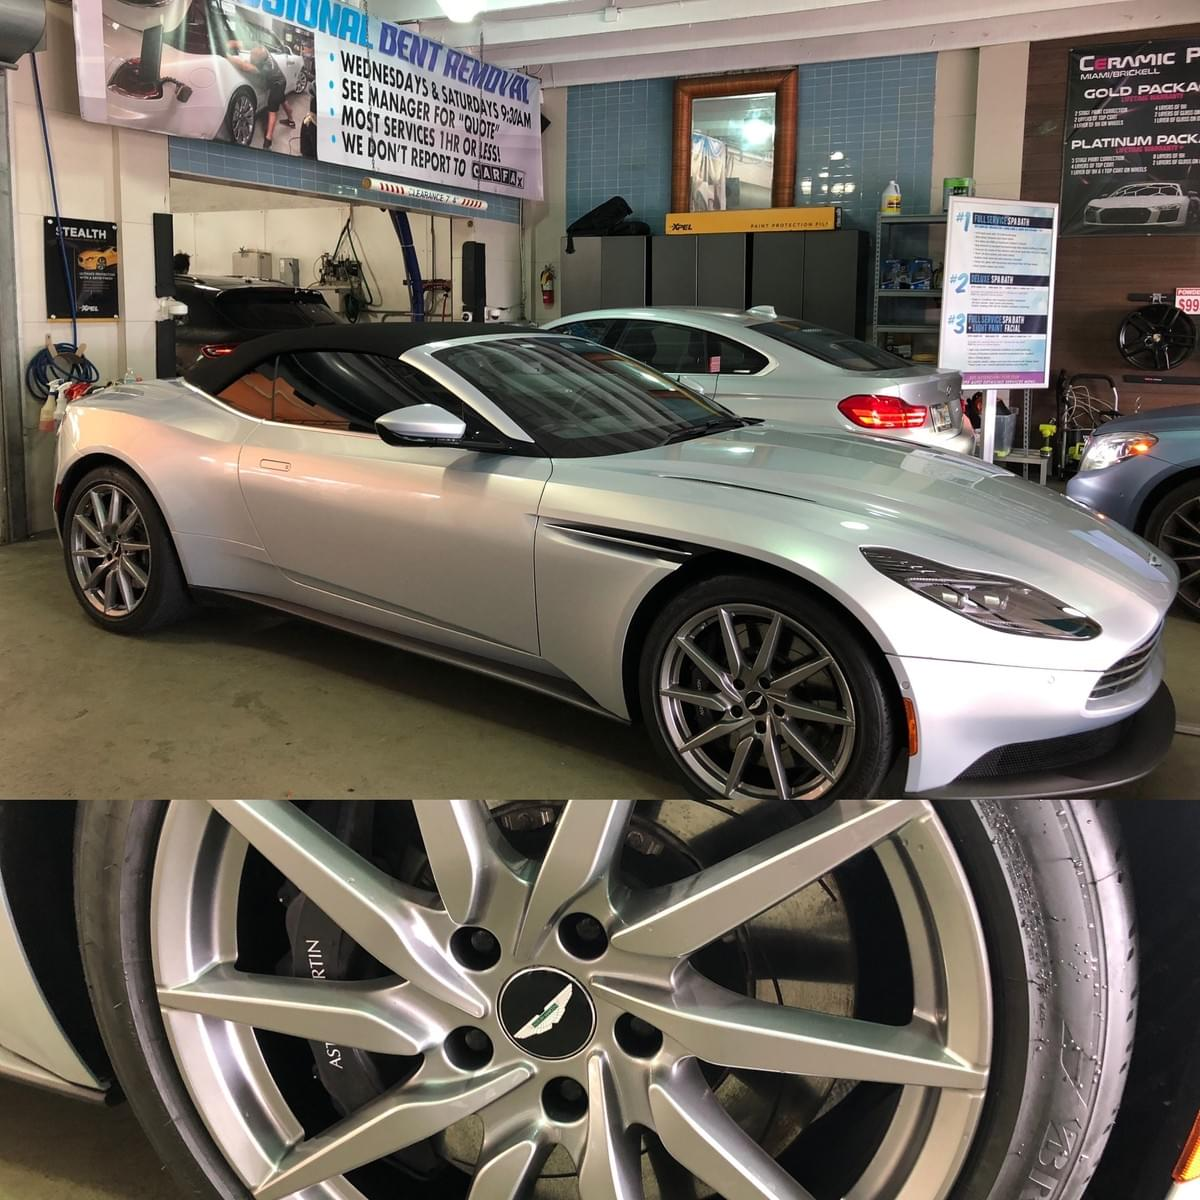 Rim repair Miami, Rim painting Miami, Wheel repair Miami, Wheel painting Miami, curb rash repair Miami, powder coating Miami